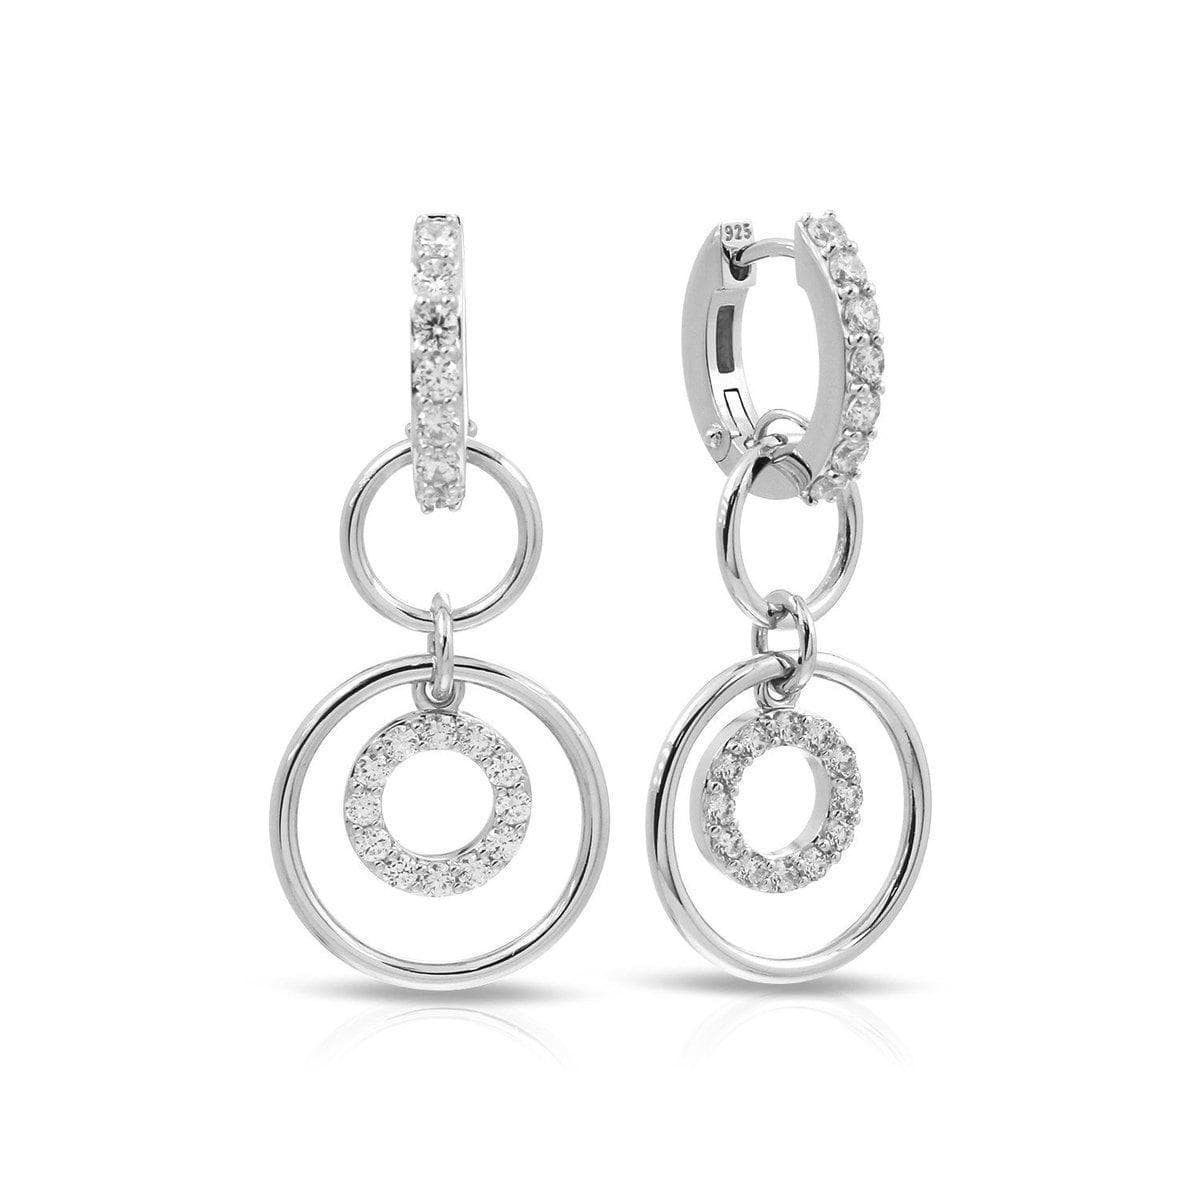 Concentra White Earrings-Belle Etoile-Renee Taylor Gallery